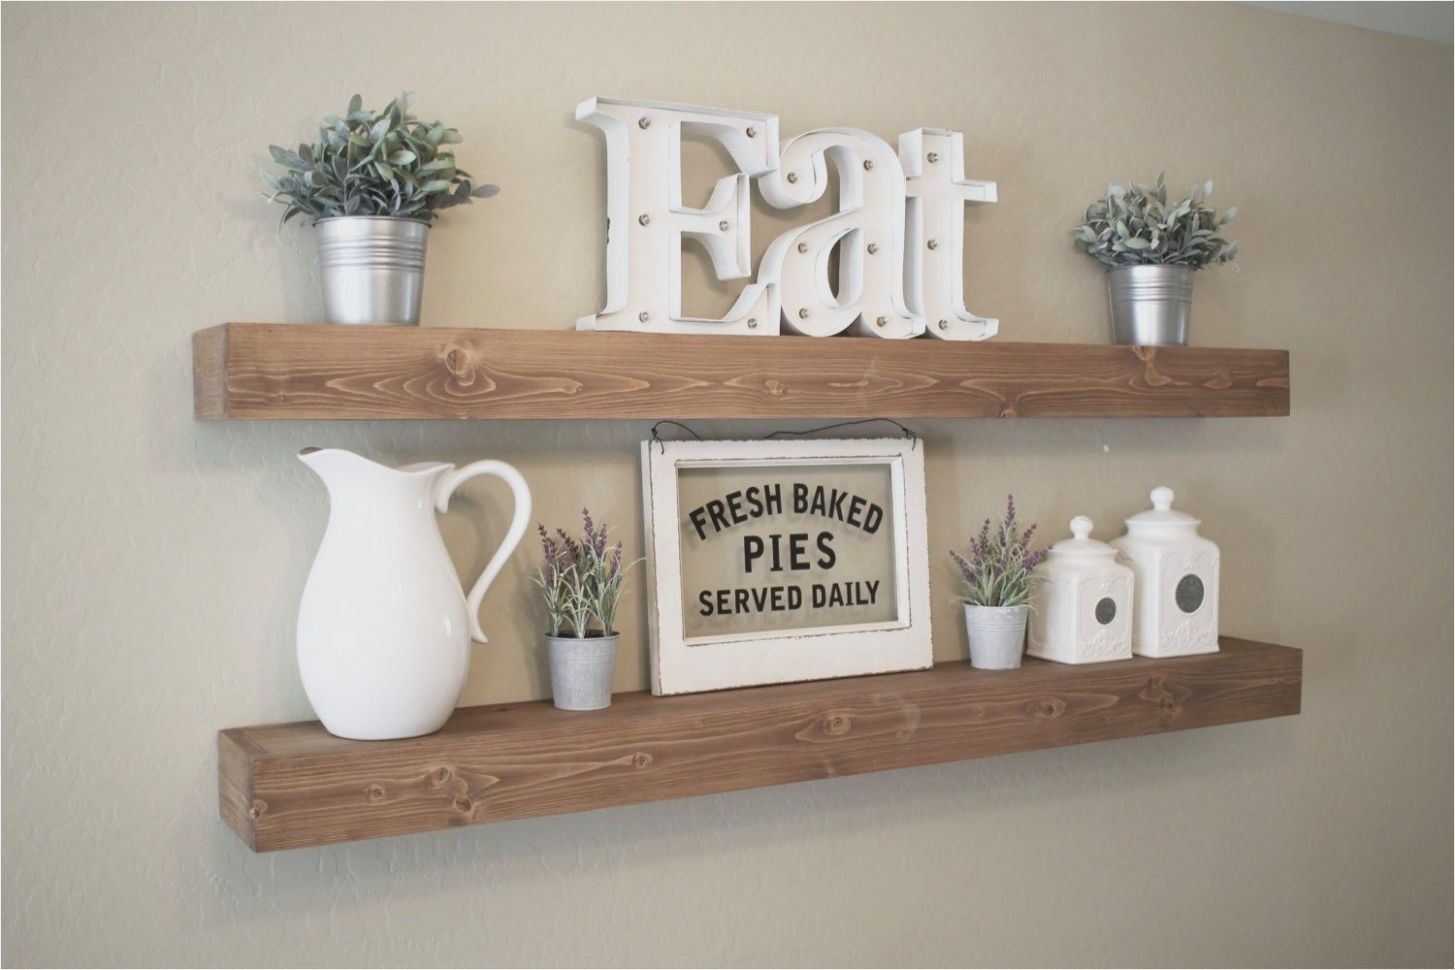 9 Best Rustic Farmhouse Floating Shelves Decor Ideas | Home decor ...